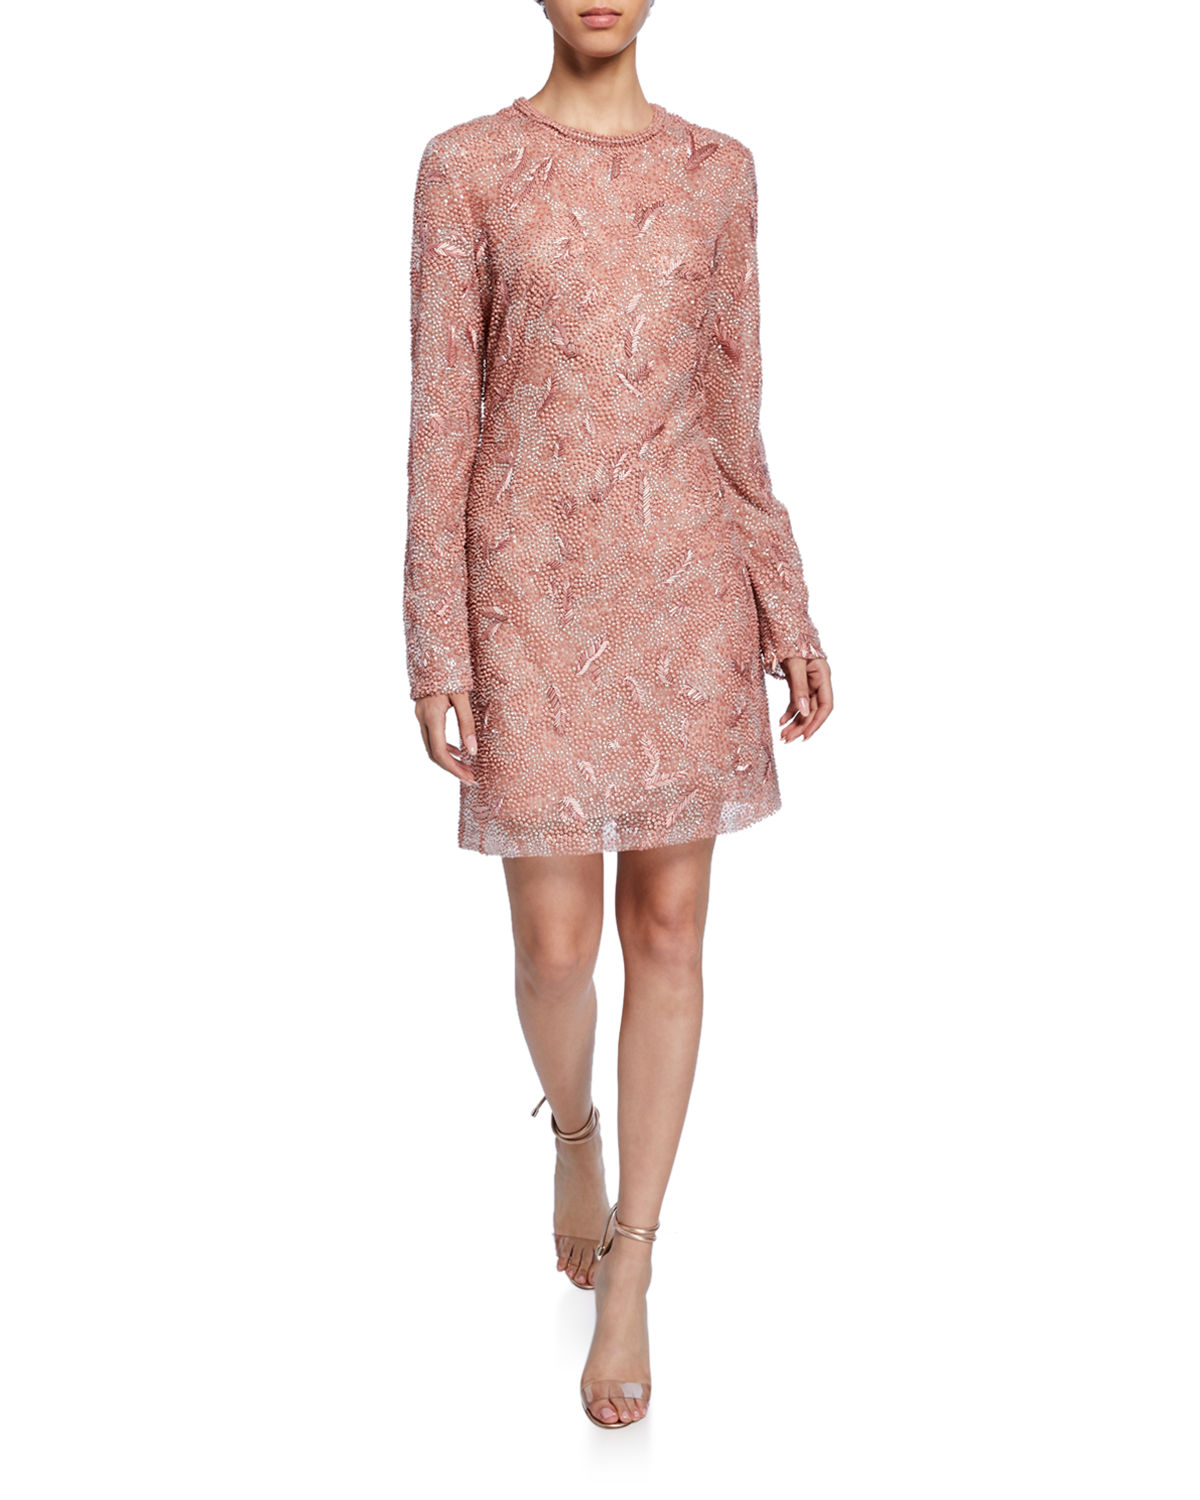 J Mendel Long-Sleeve Embroidered Mini Dress In Pink